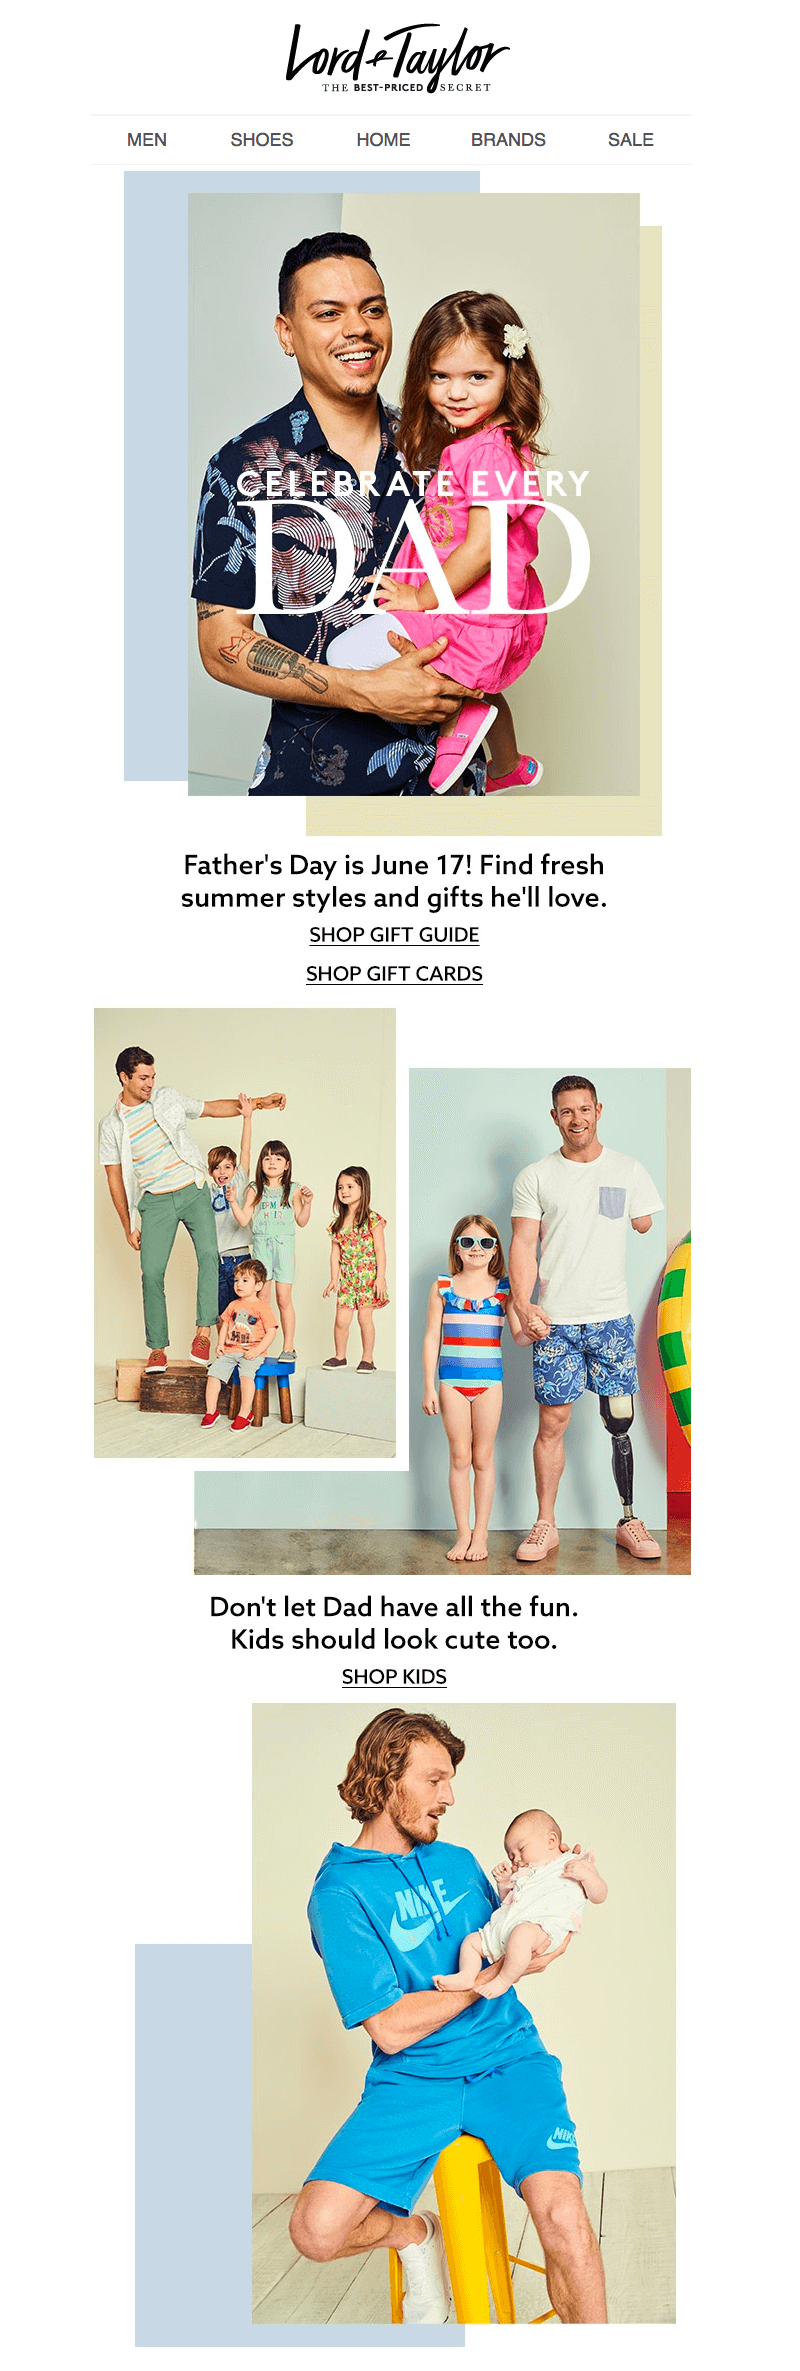 Lord & Taylor Father's Day Email Designs